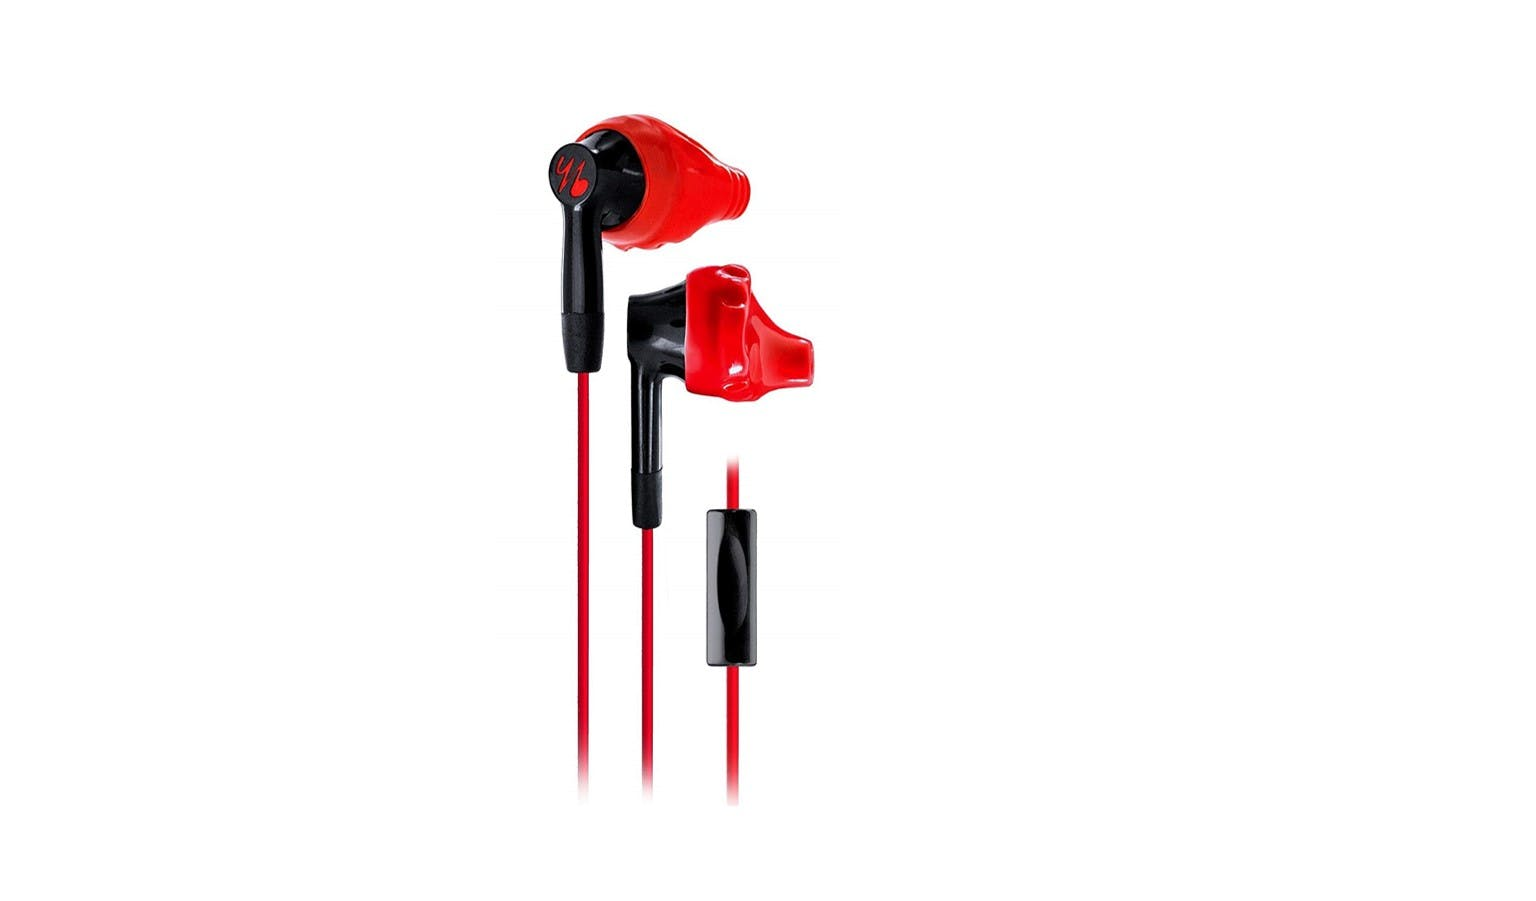 609c5b32ef1 JBL Inspire 300 Sports in-Ear Headphone with Mic - Red and Black | Harvey  Norman Malaysia